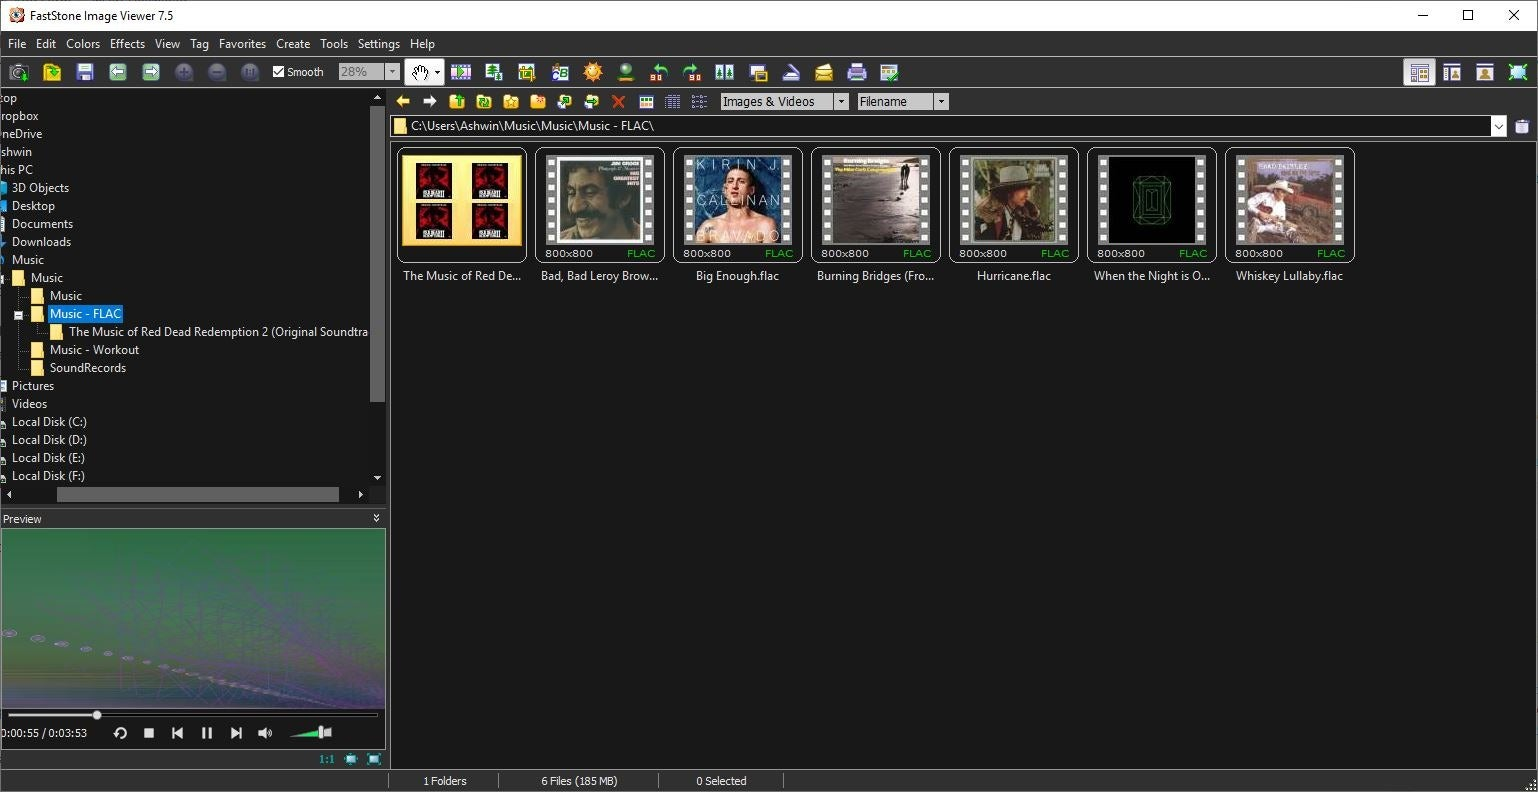 Reproductor de música FastStone Image Viewer